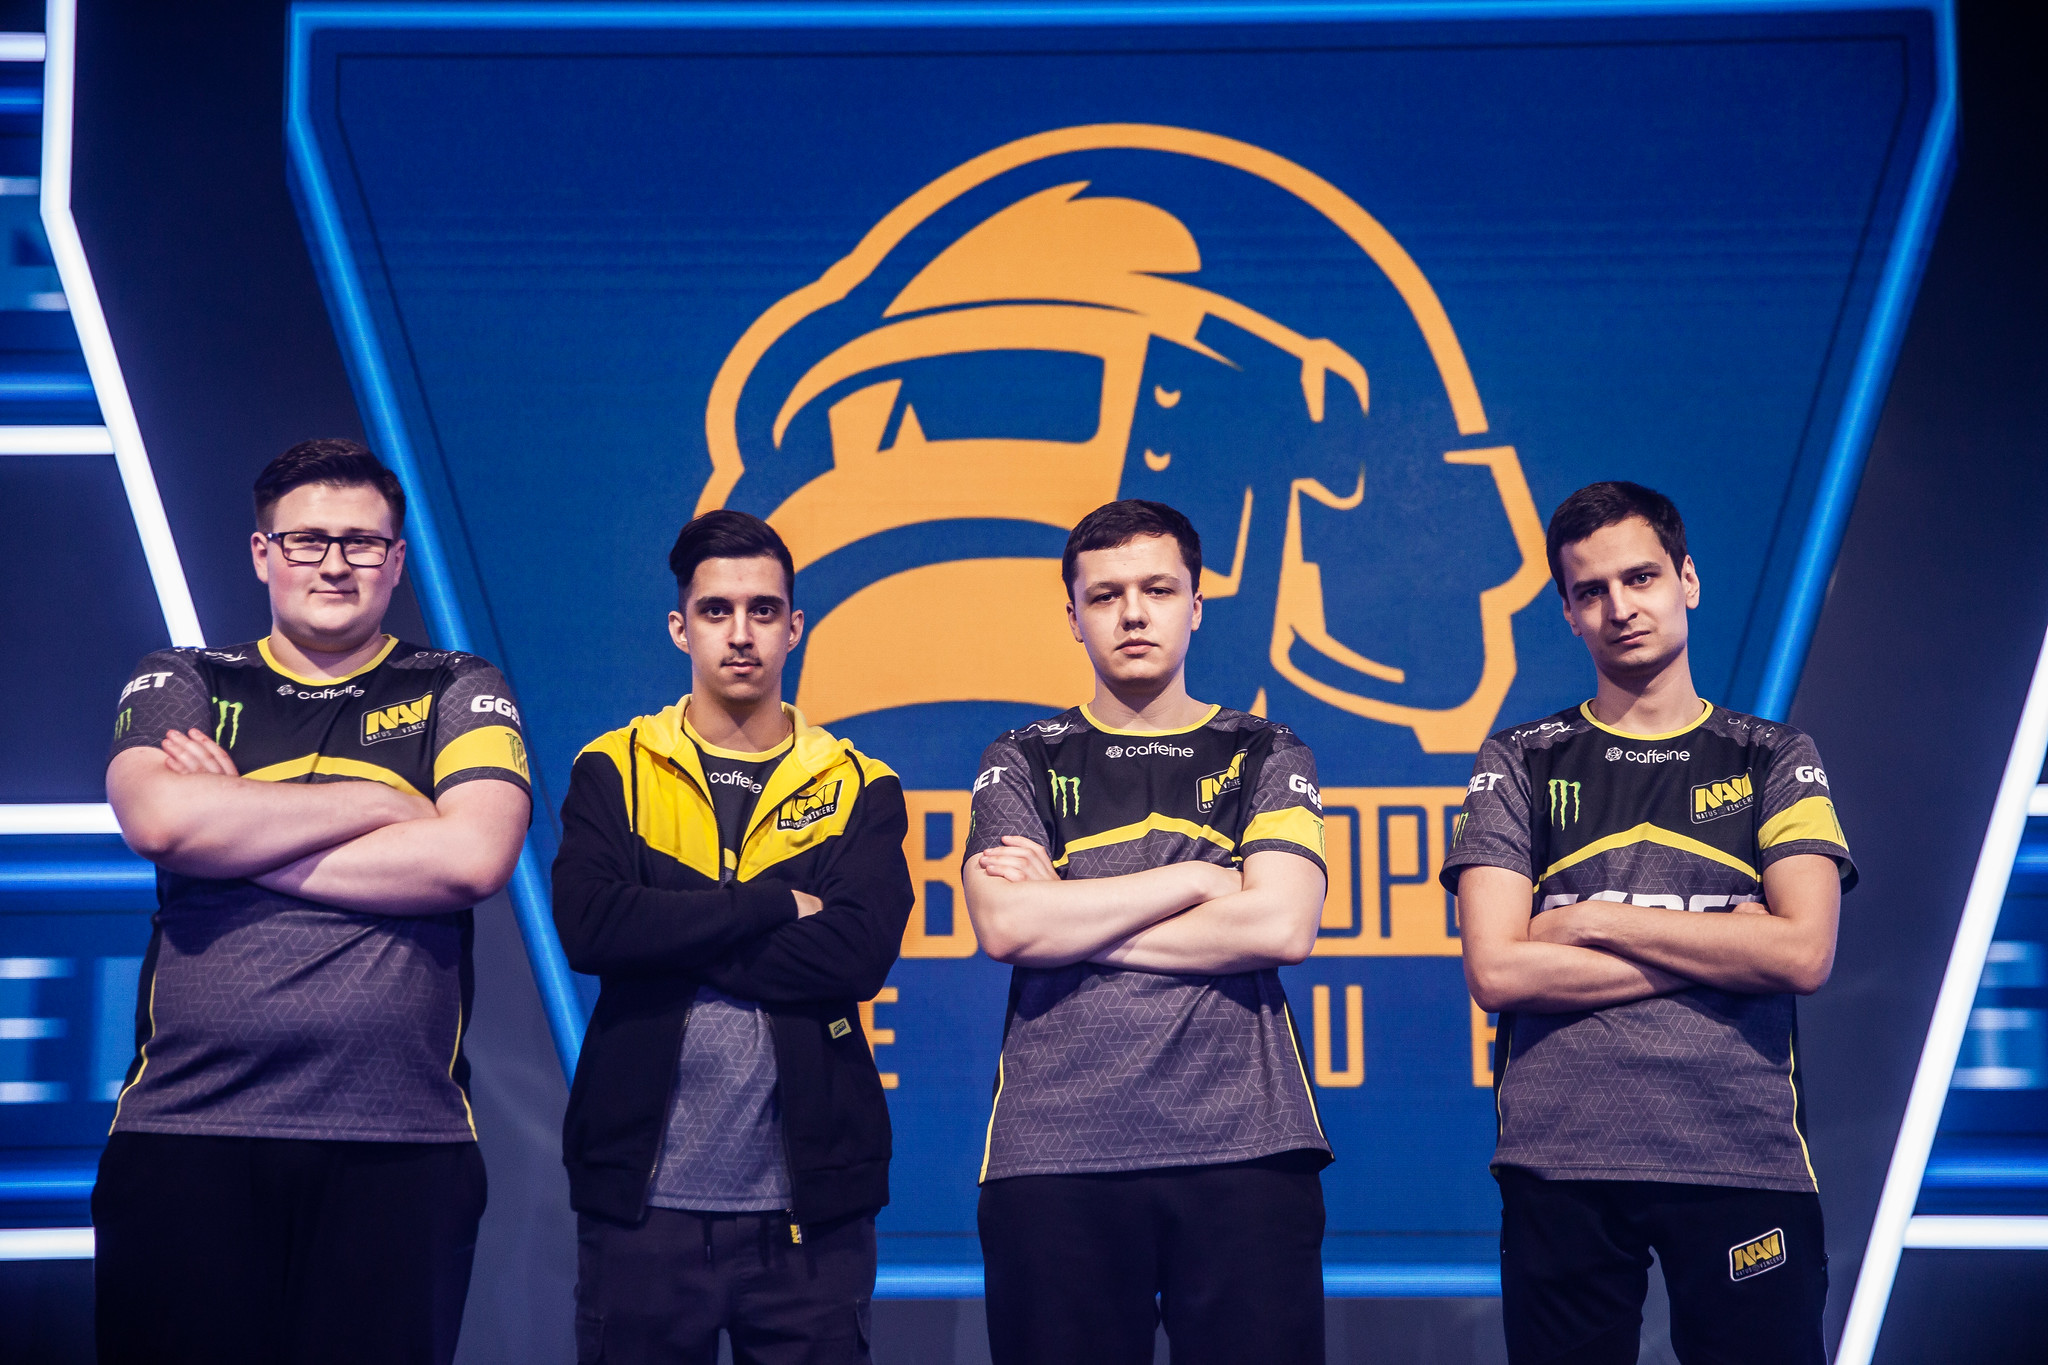 Natus Vincere performed exceptionally in Week 3 of PUBG Europe League